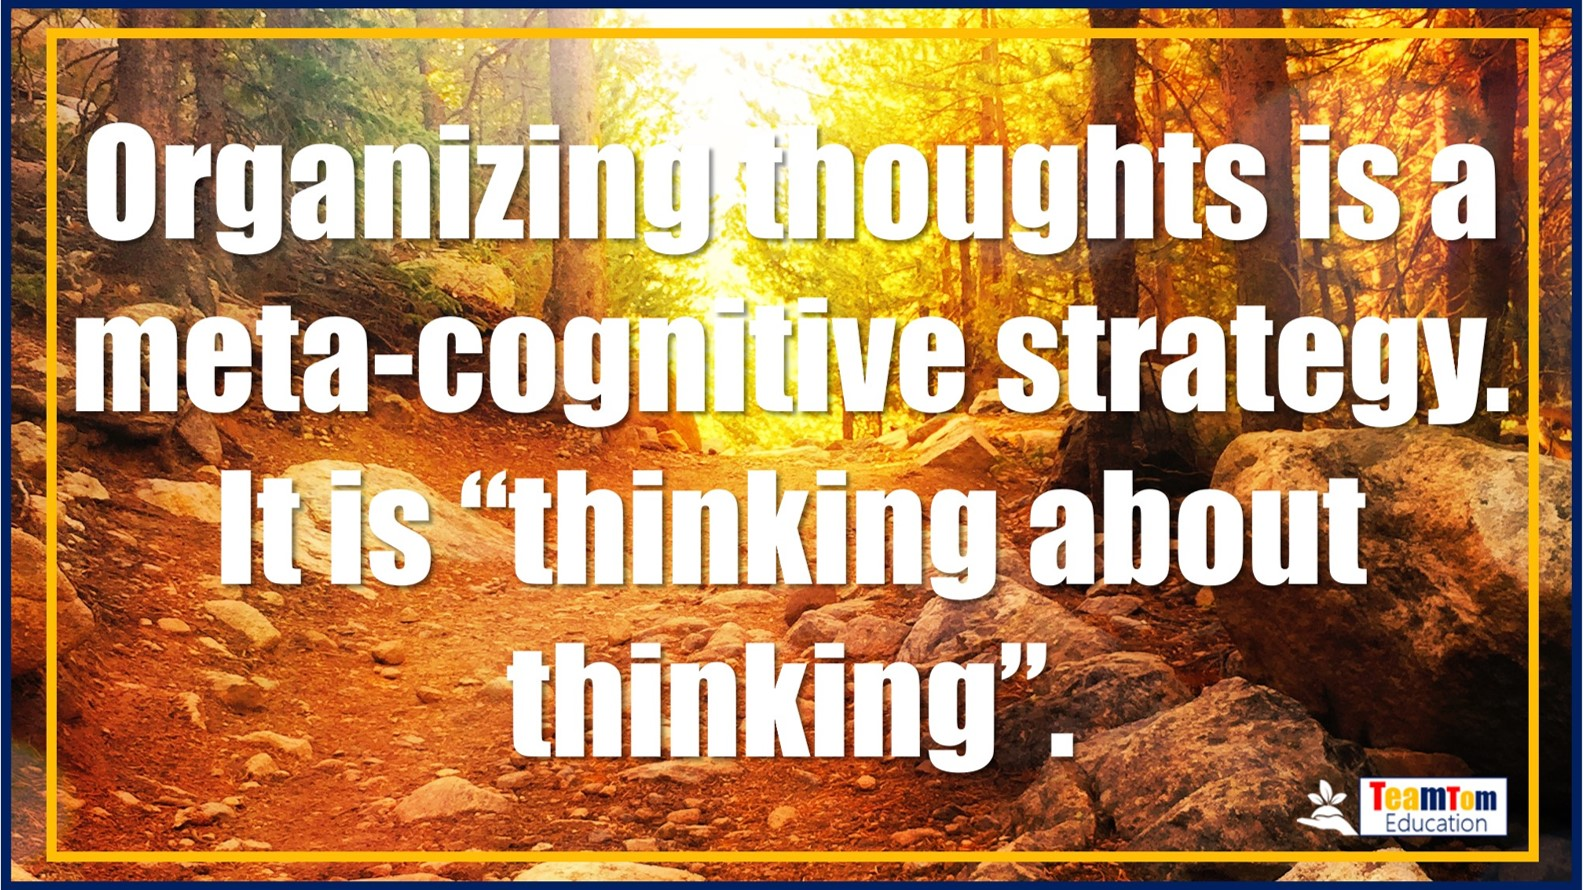 Teaching meta-cognition is not that hard, but it is powerful for learning.